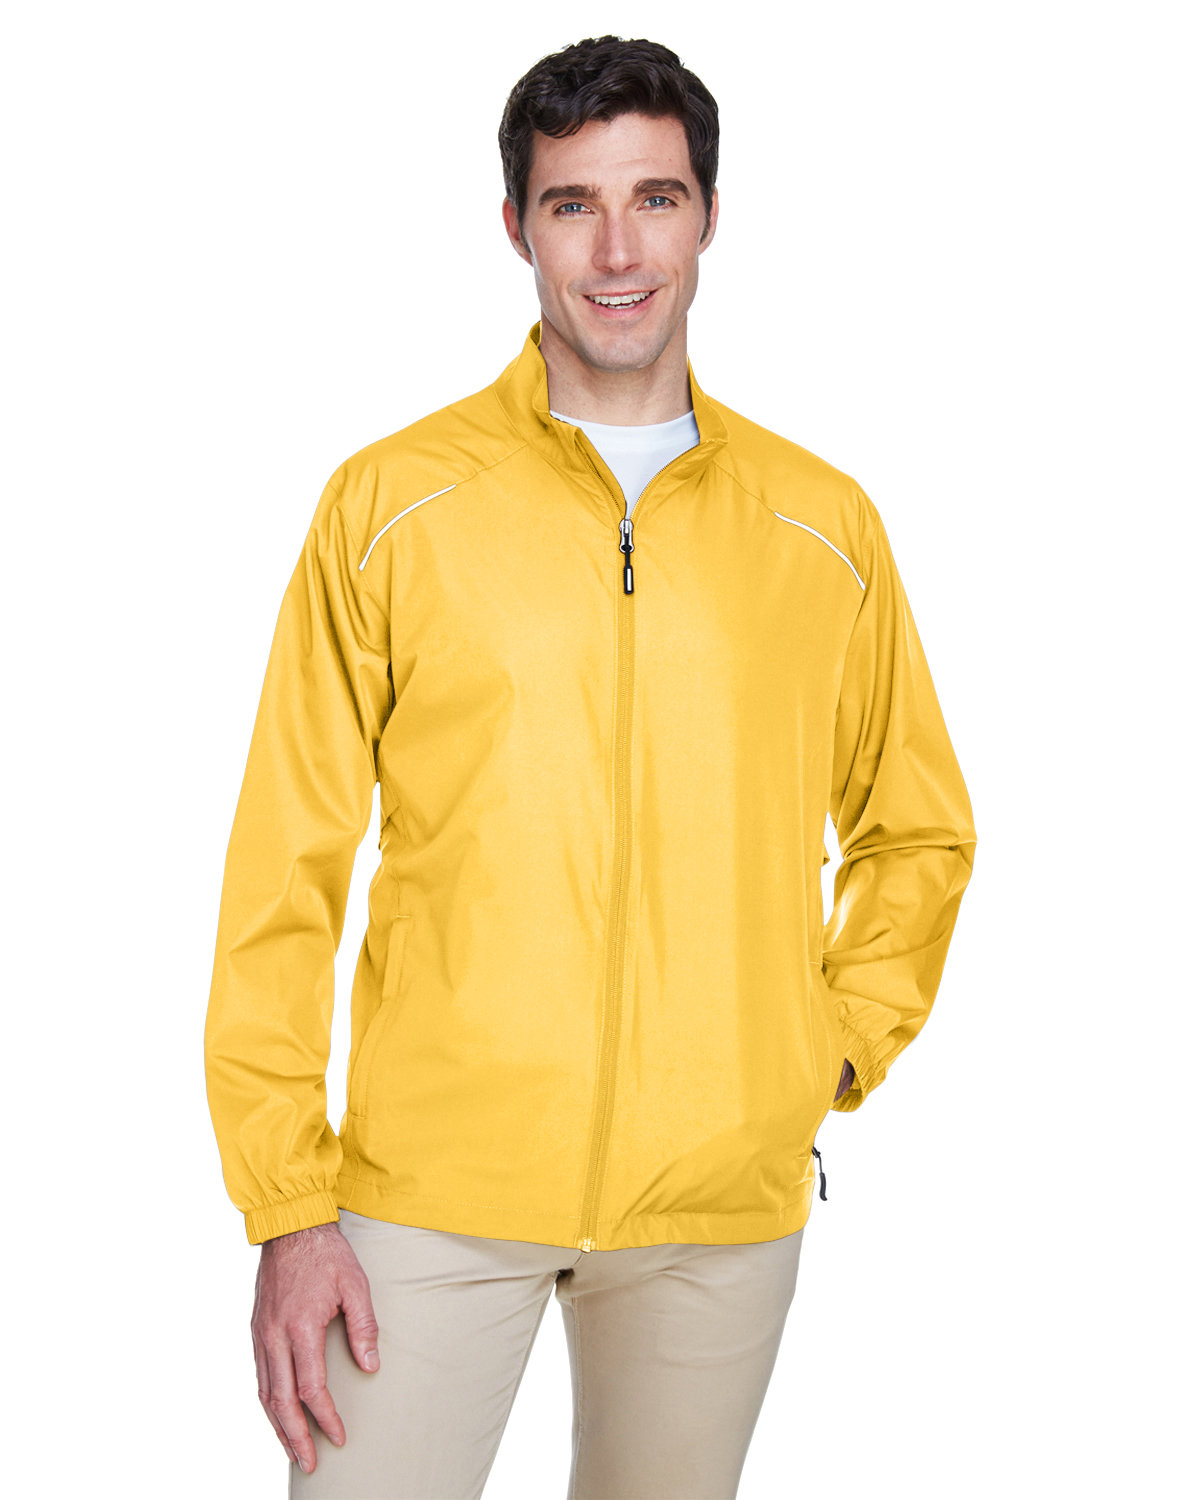 Core 365 Men's Motivate Unlined Lightweight Jacket CAMPUS GOLD